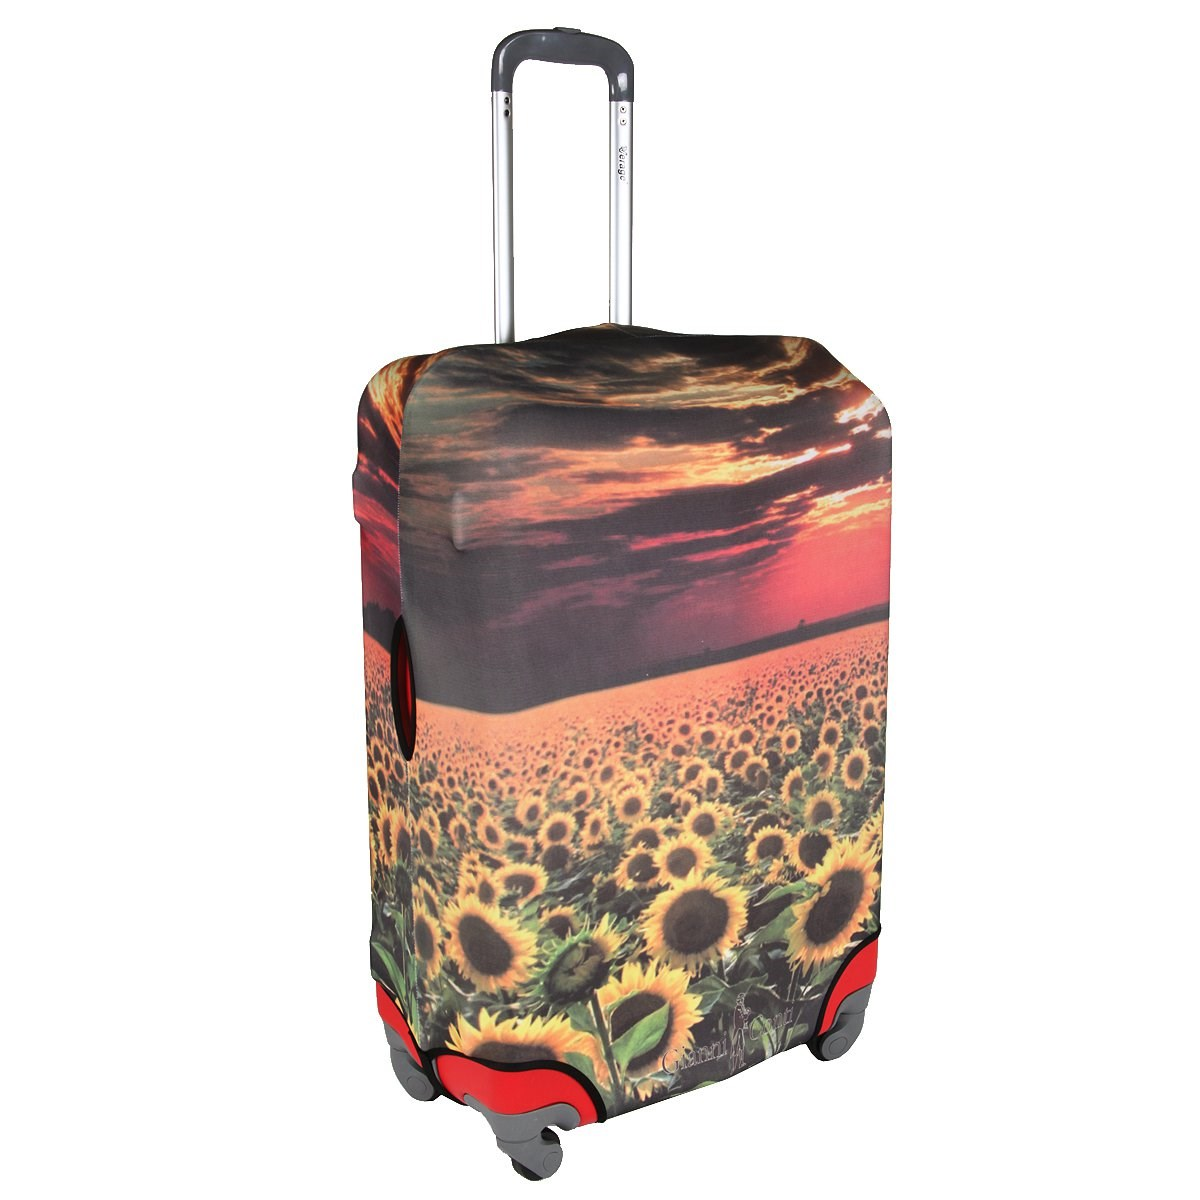 Protective cover for suitcase 9003 L protective hard cover up